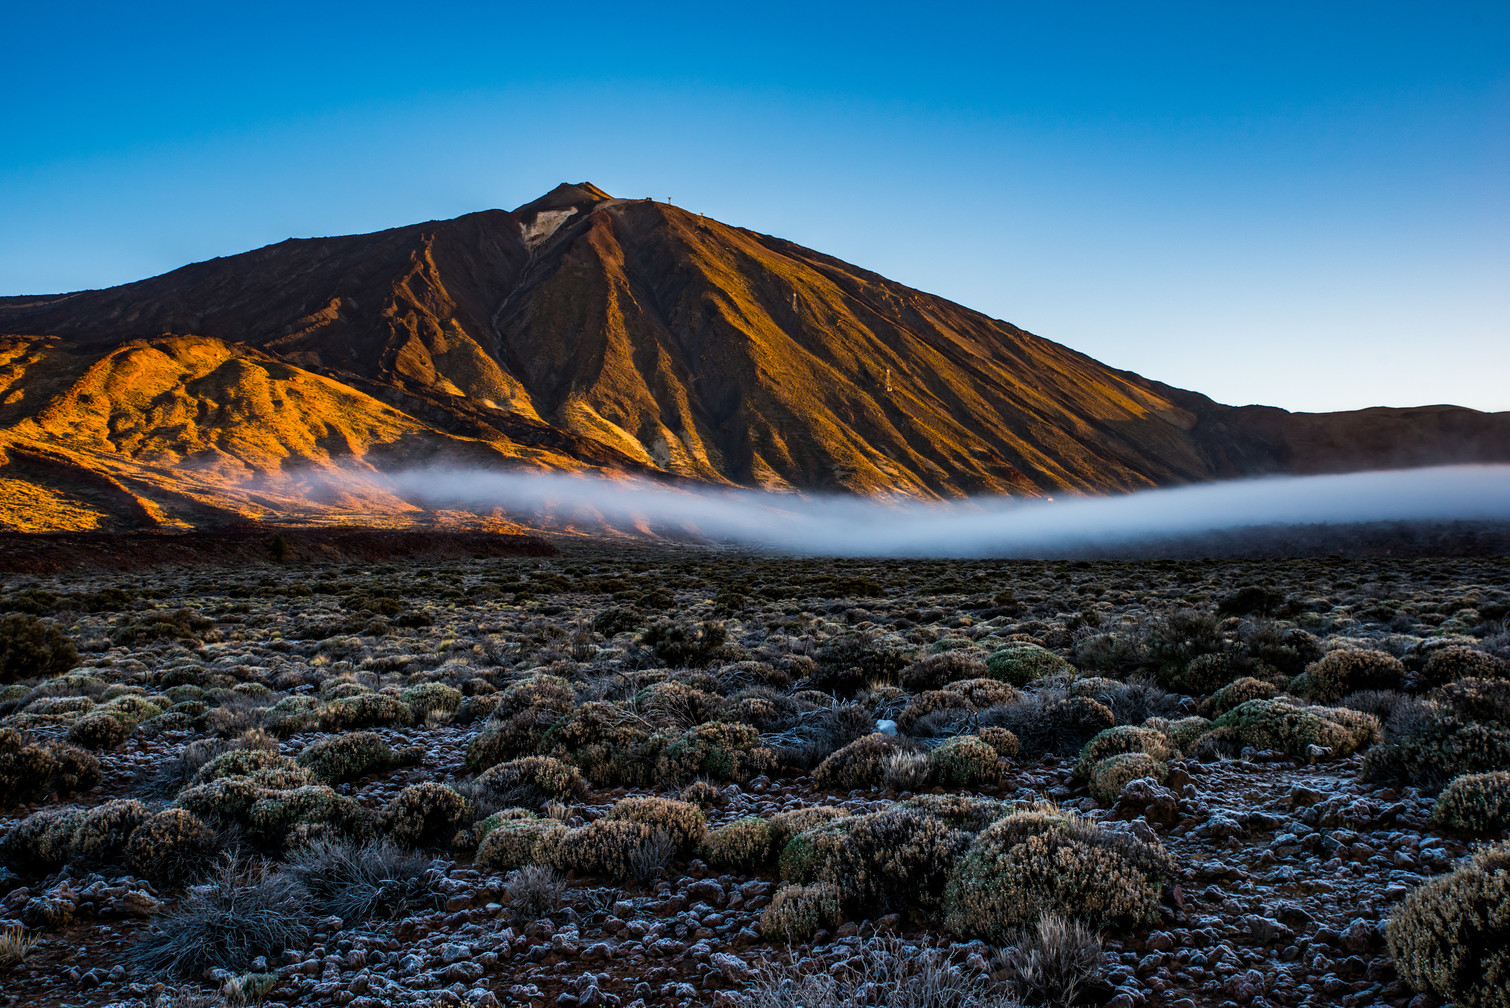 Sunrise at Teide Volcano - Tenerife - Canary Islands (Spain)